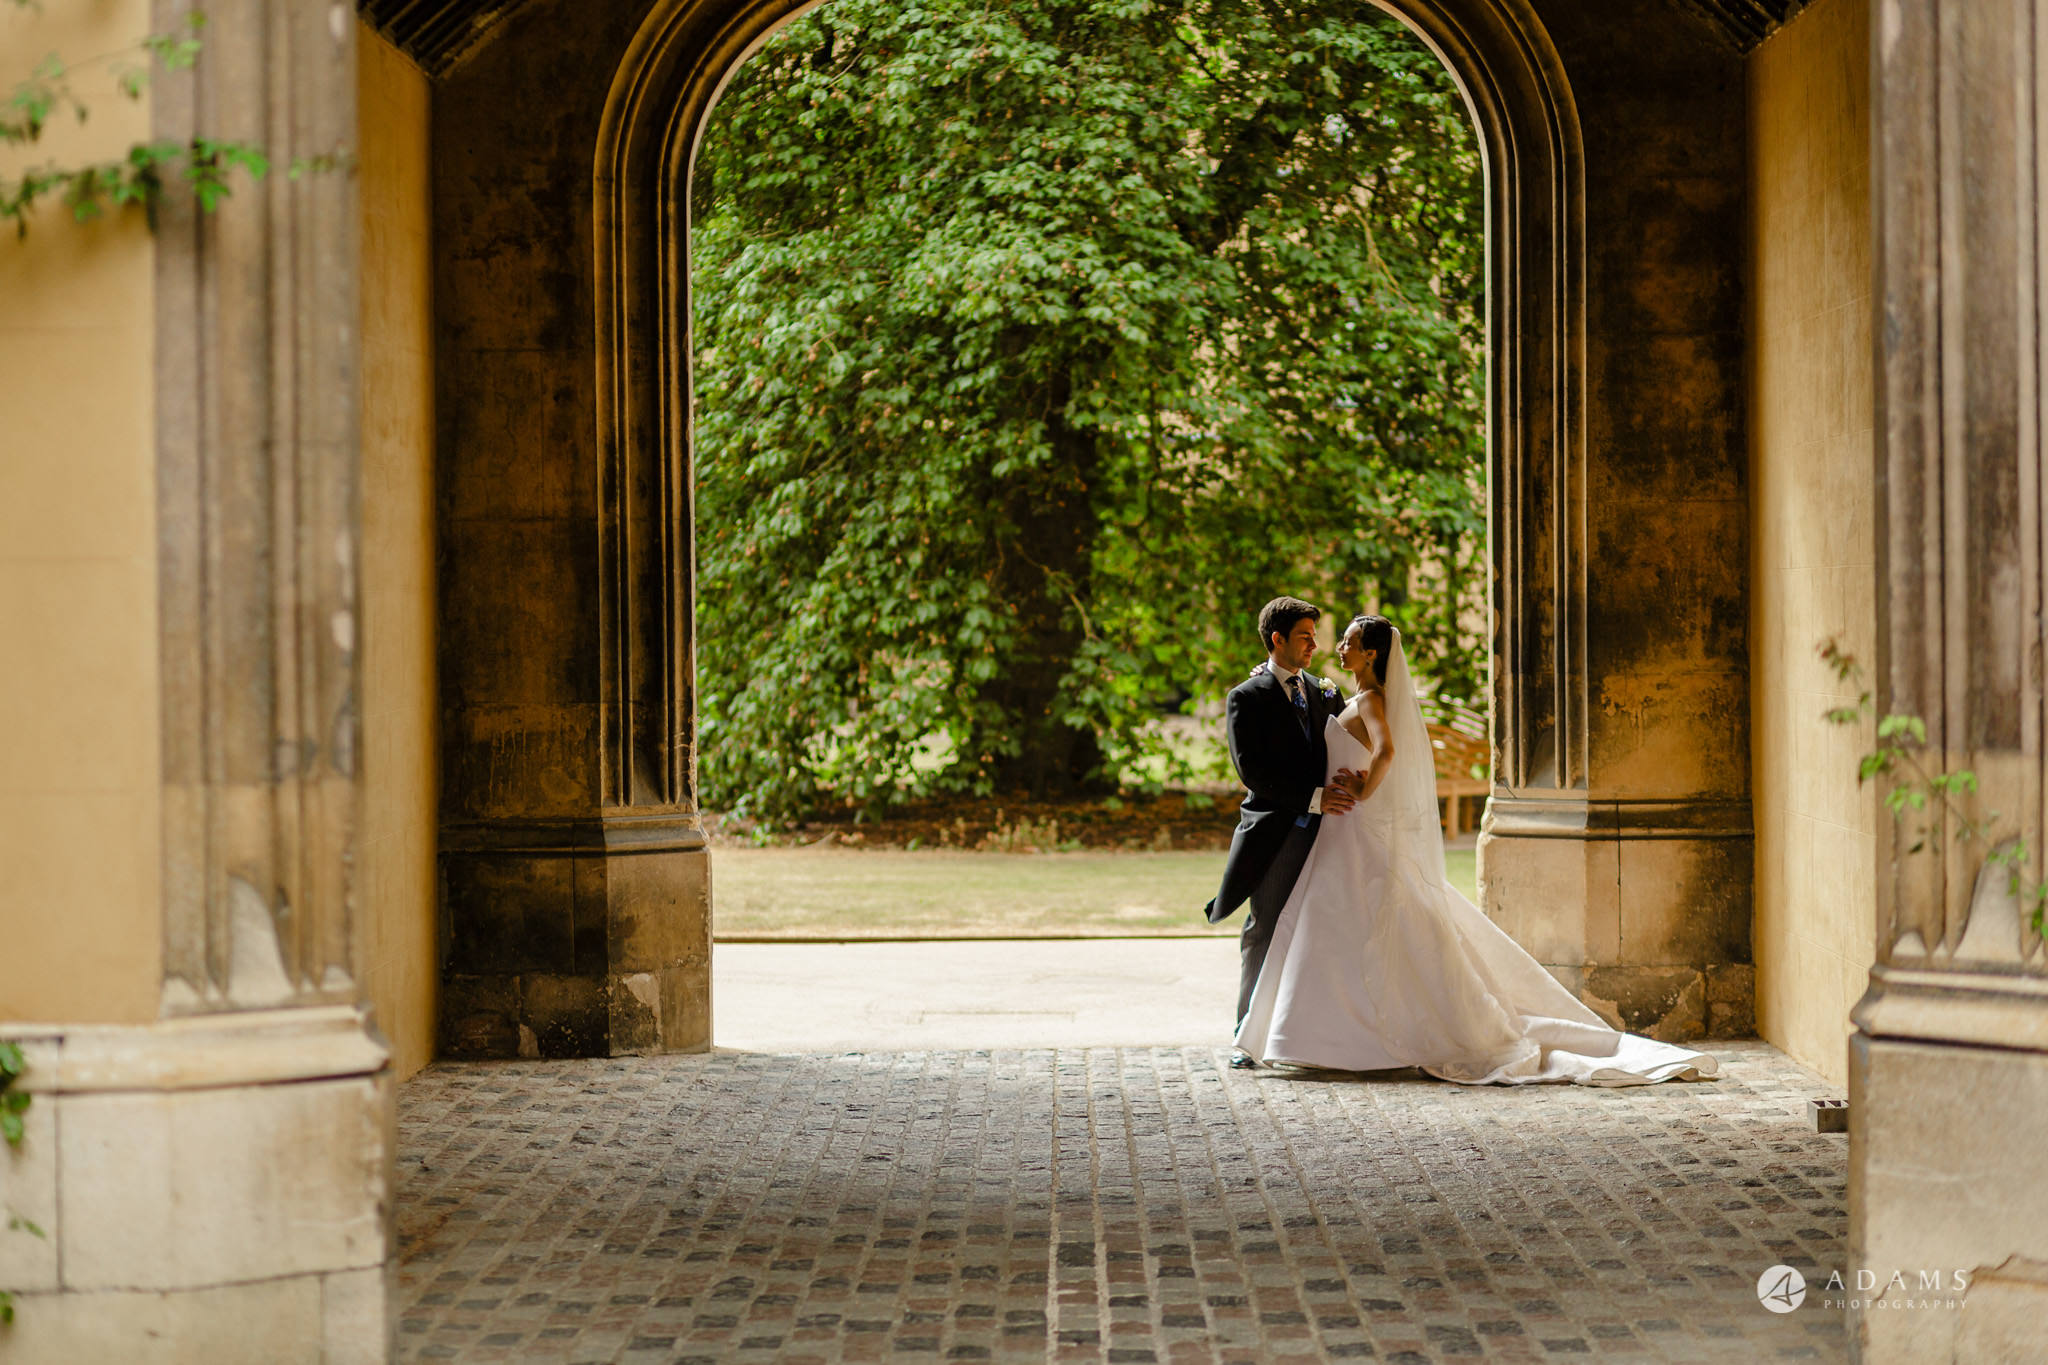 Trinity College Cambridge wedding moment in the archway